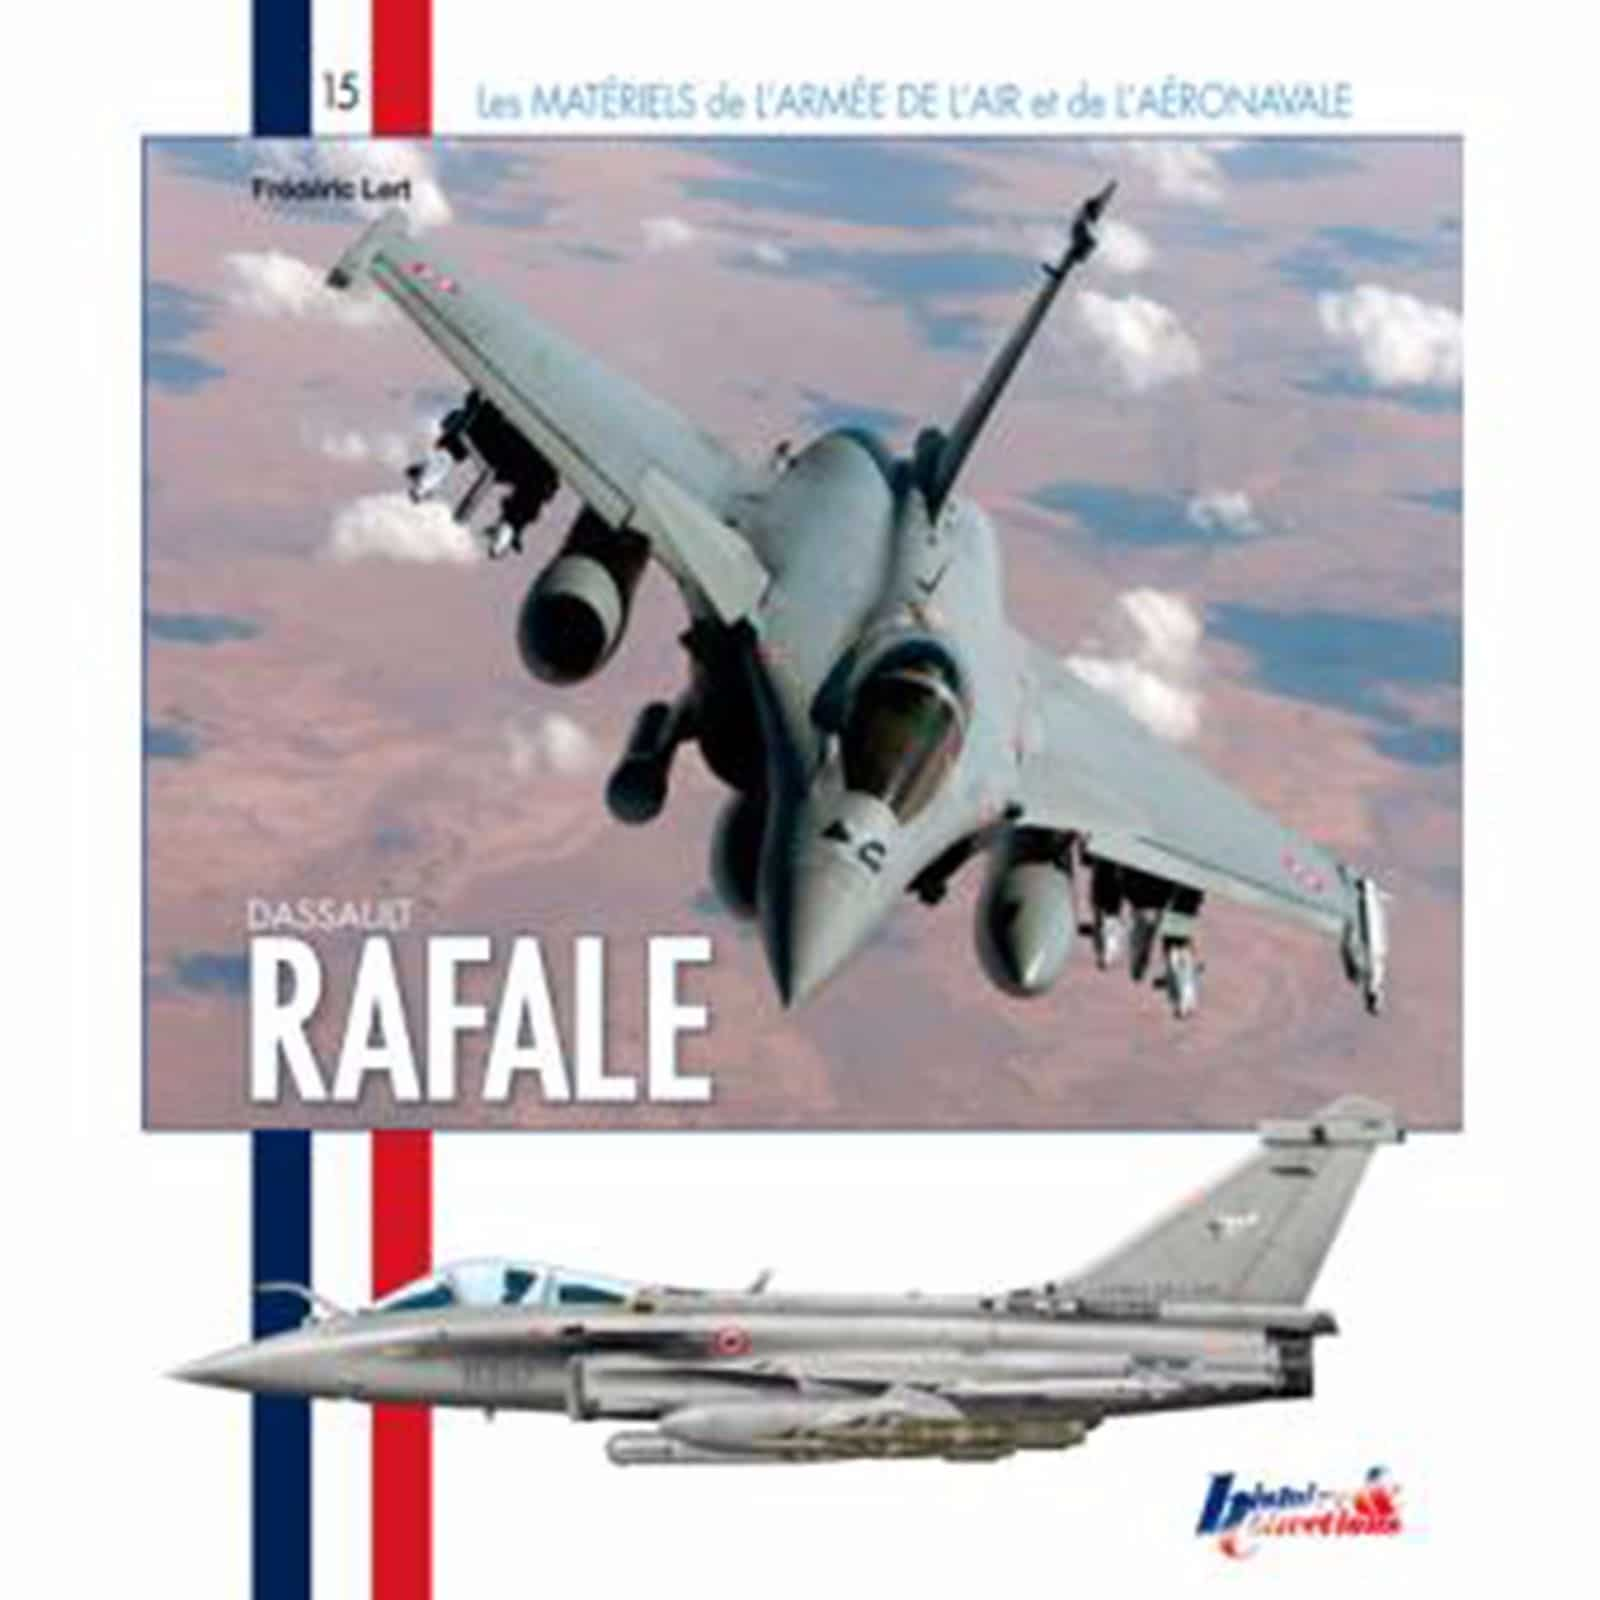 a report on the aairframeh a book about aircraft